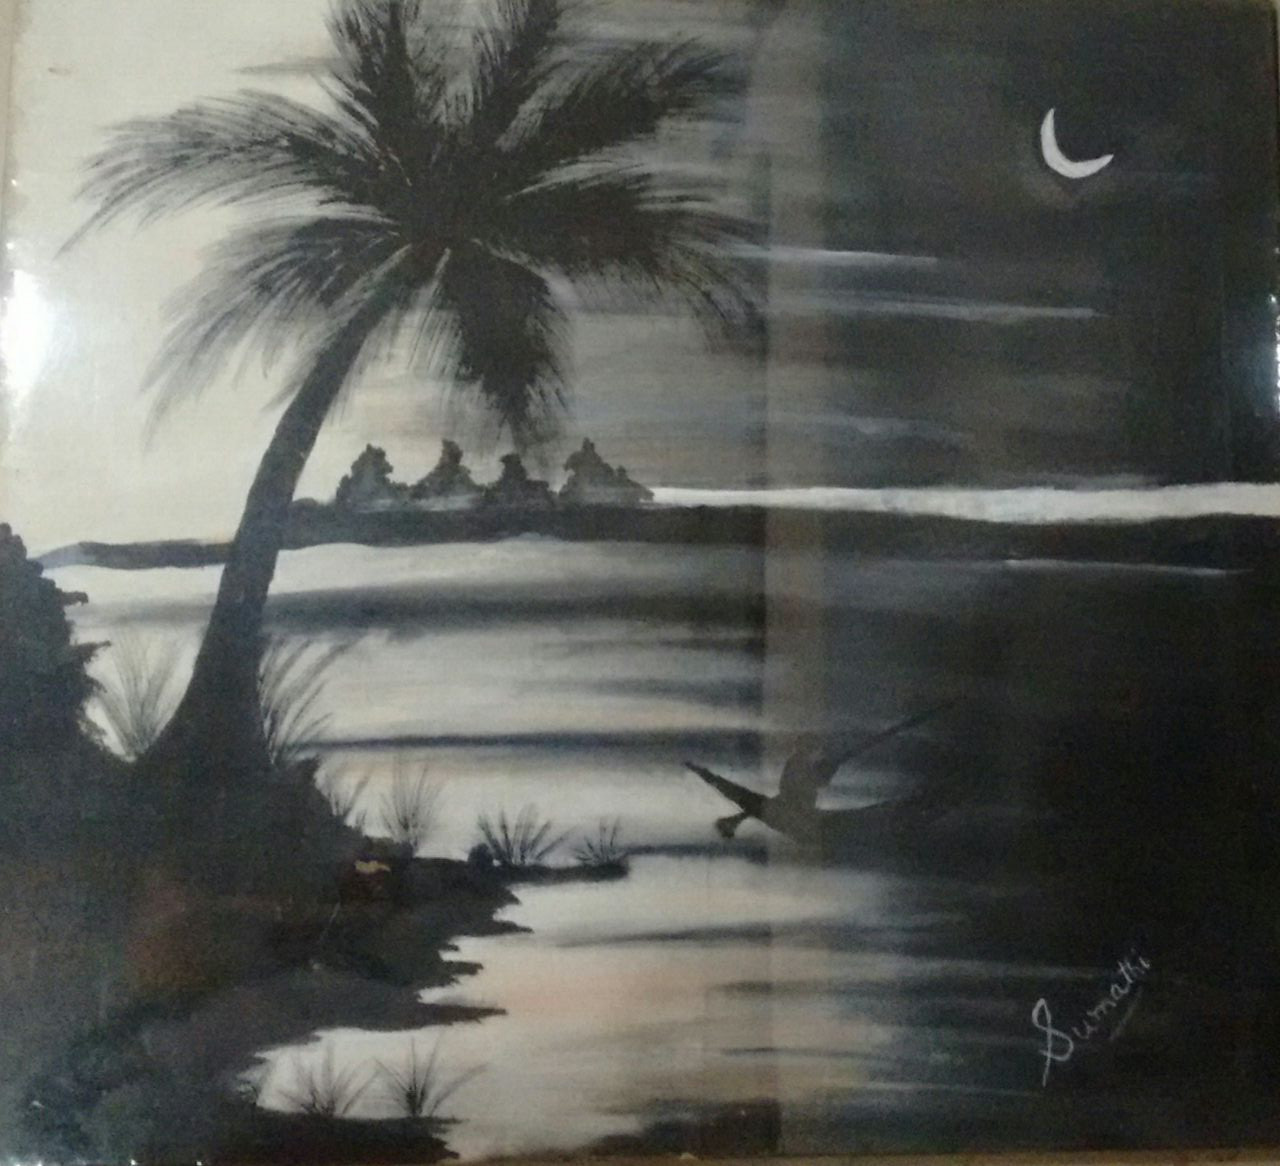 Buy black and white land scape handmade painting by s sivaranjani sumathi codeart 4773 28437 paintings for sale online in india